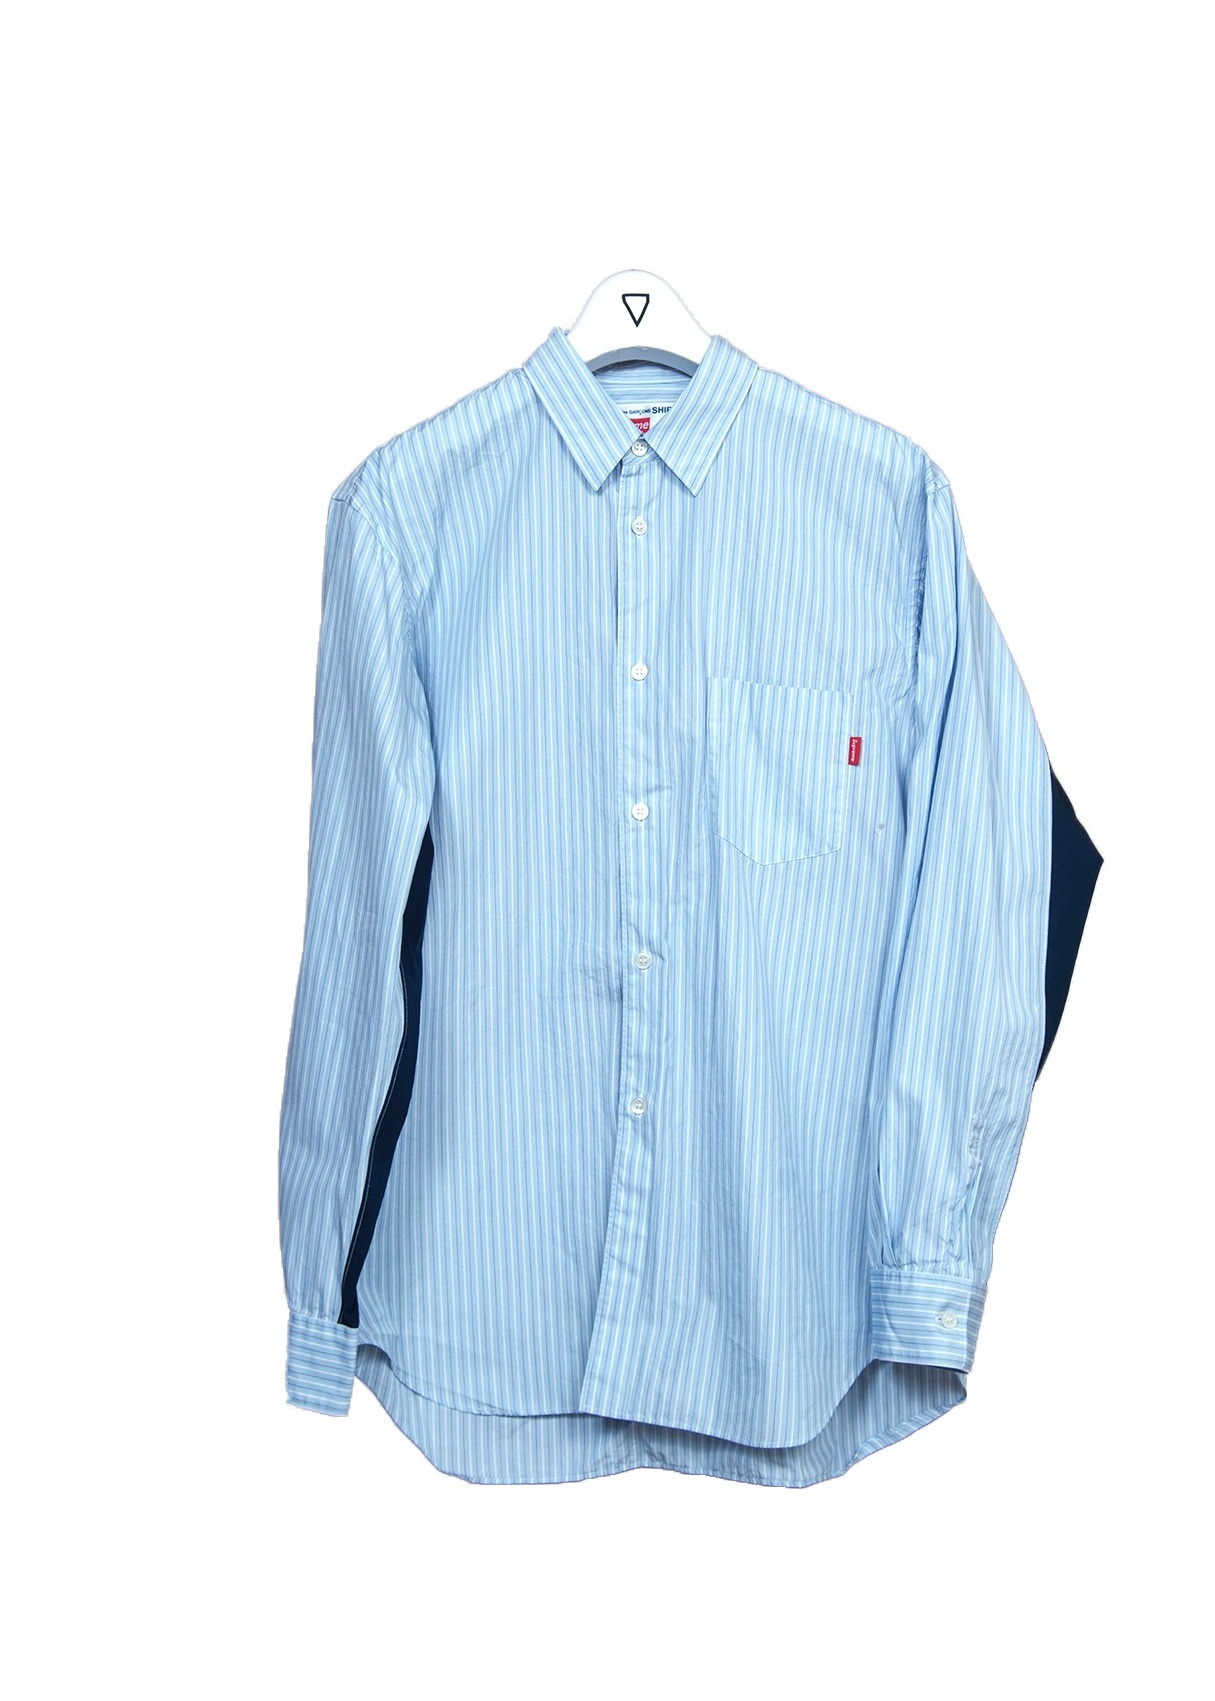 "M SUPREME X COMMES COLLAB SHIRT ""SUPREME-SH01"""